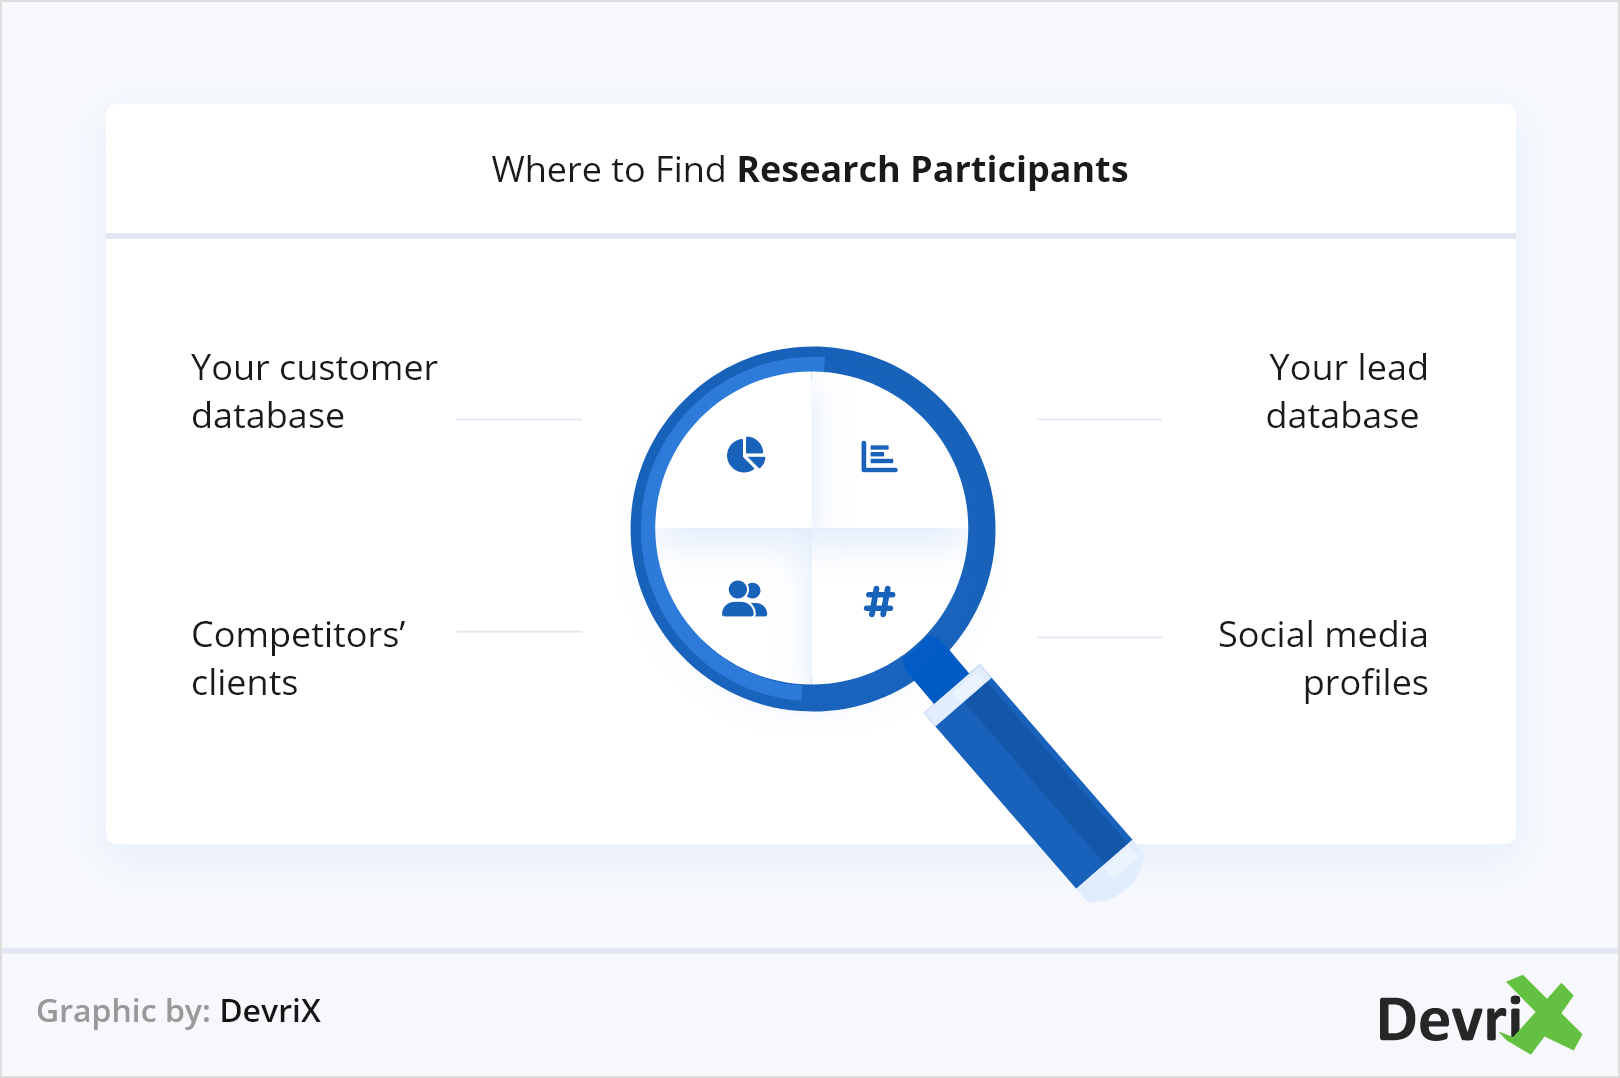 Where to Find Research Participants